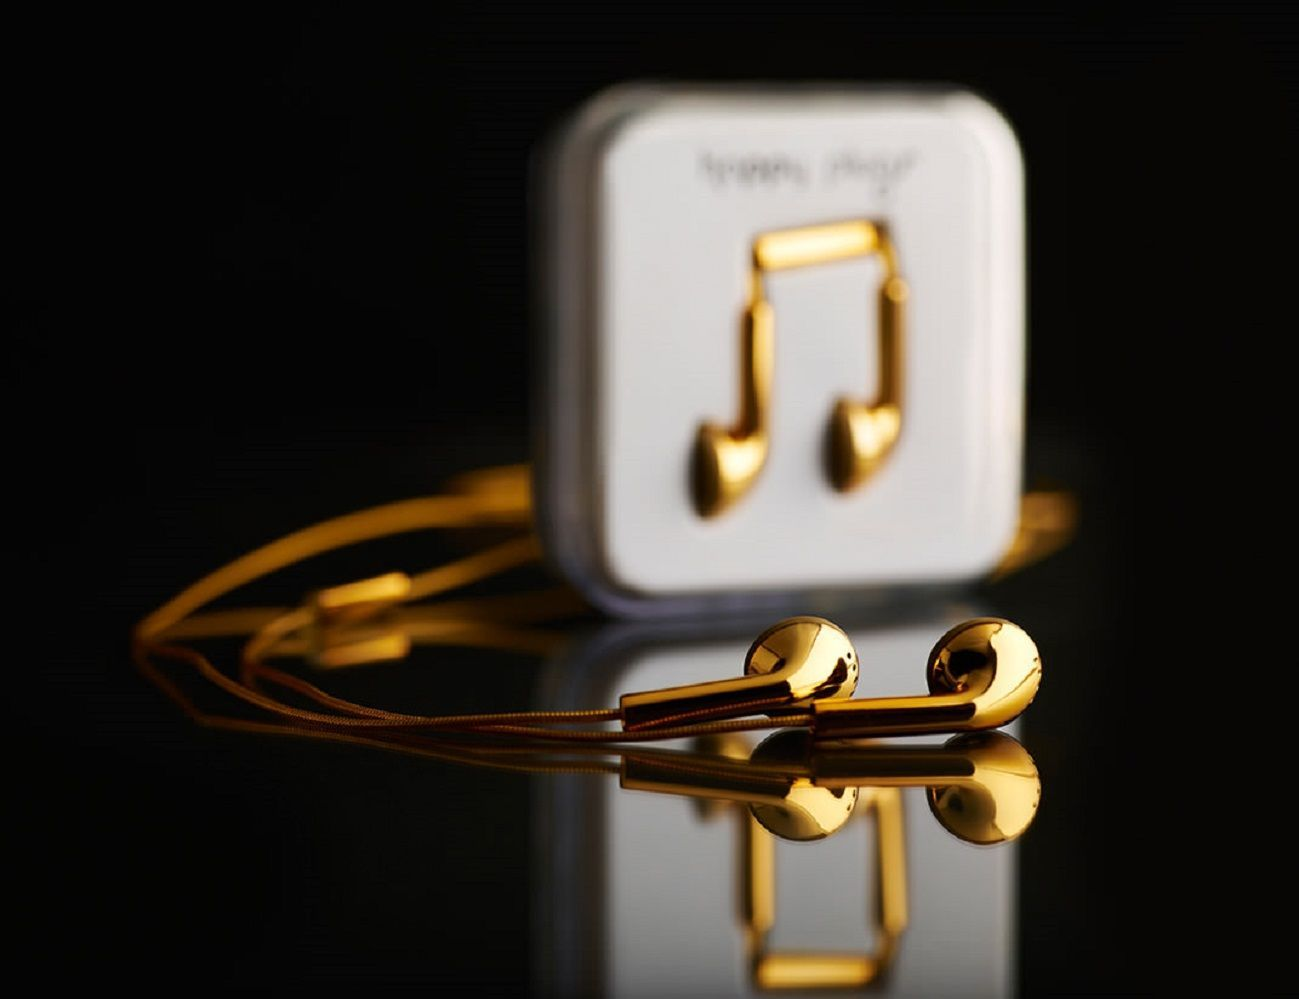 gold iphone headphones happy plugs gold earbuds 187 gadget flow 3153